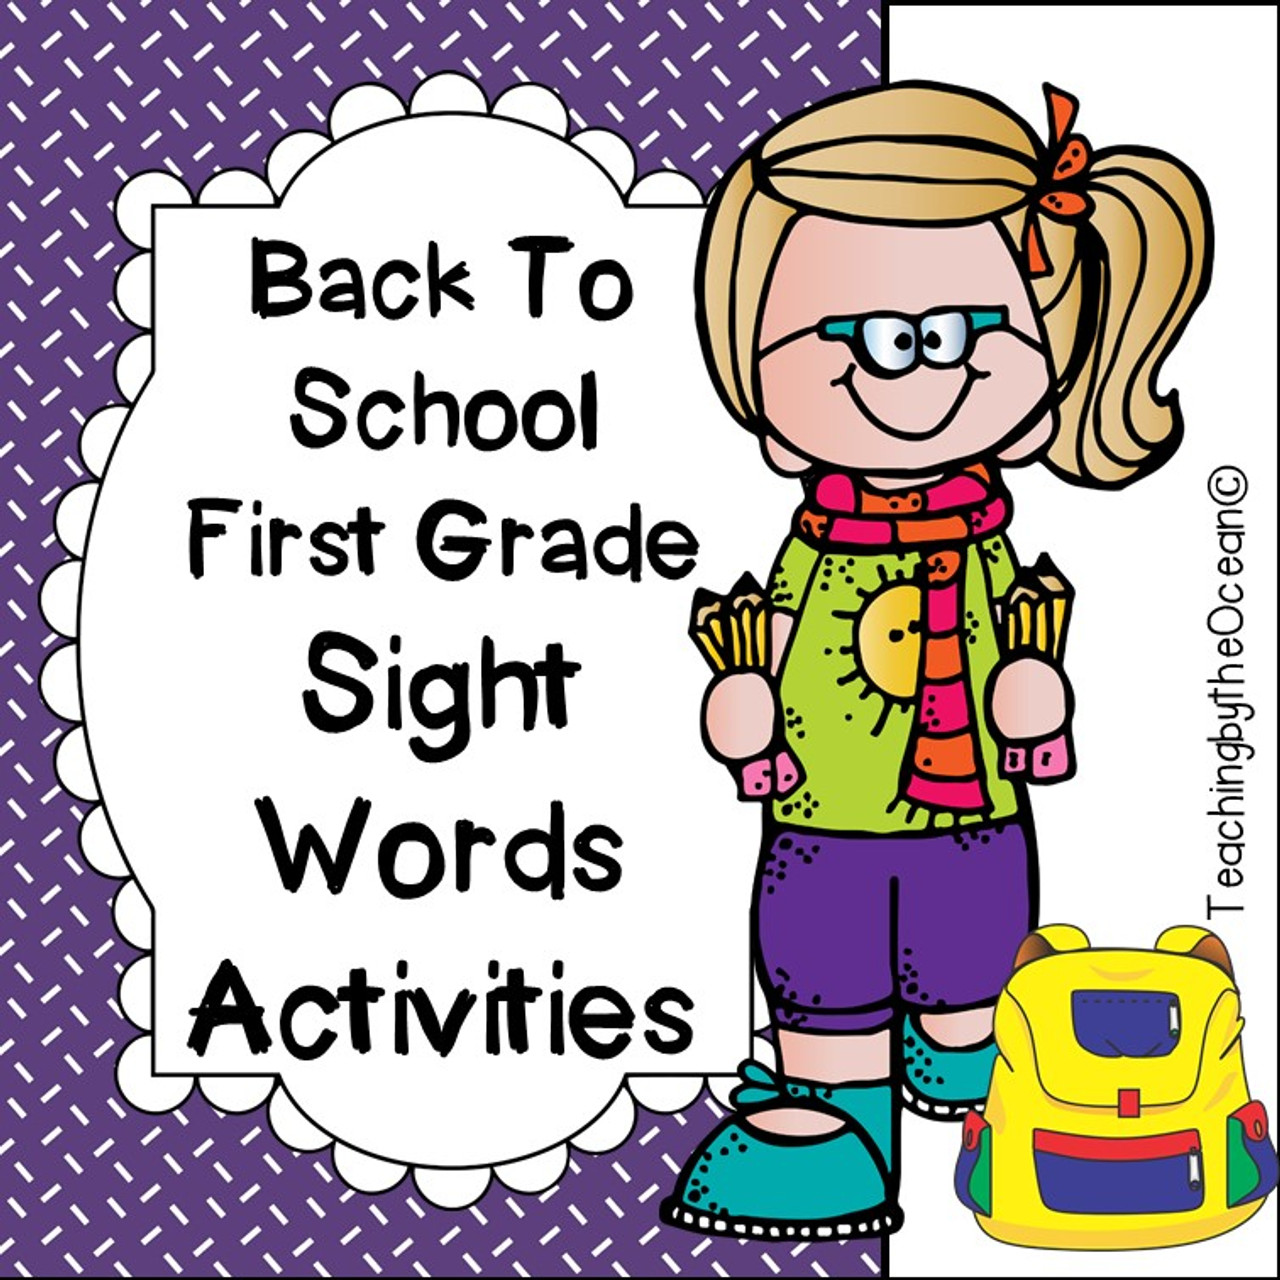 First Grade Sight Words Worksheets - Back to School Themed - Amped Up  Learning [ 1280 x 1280 Pixel ]